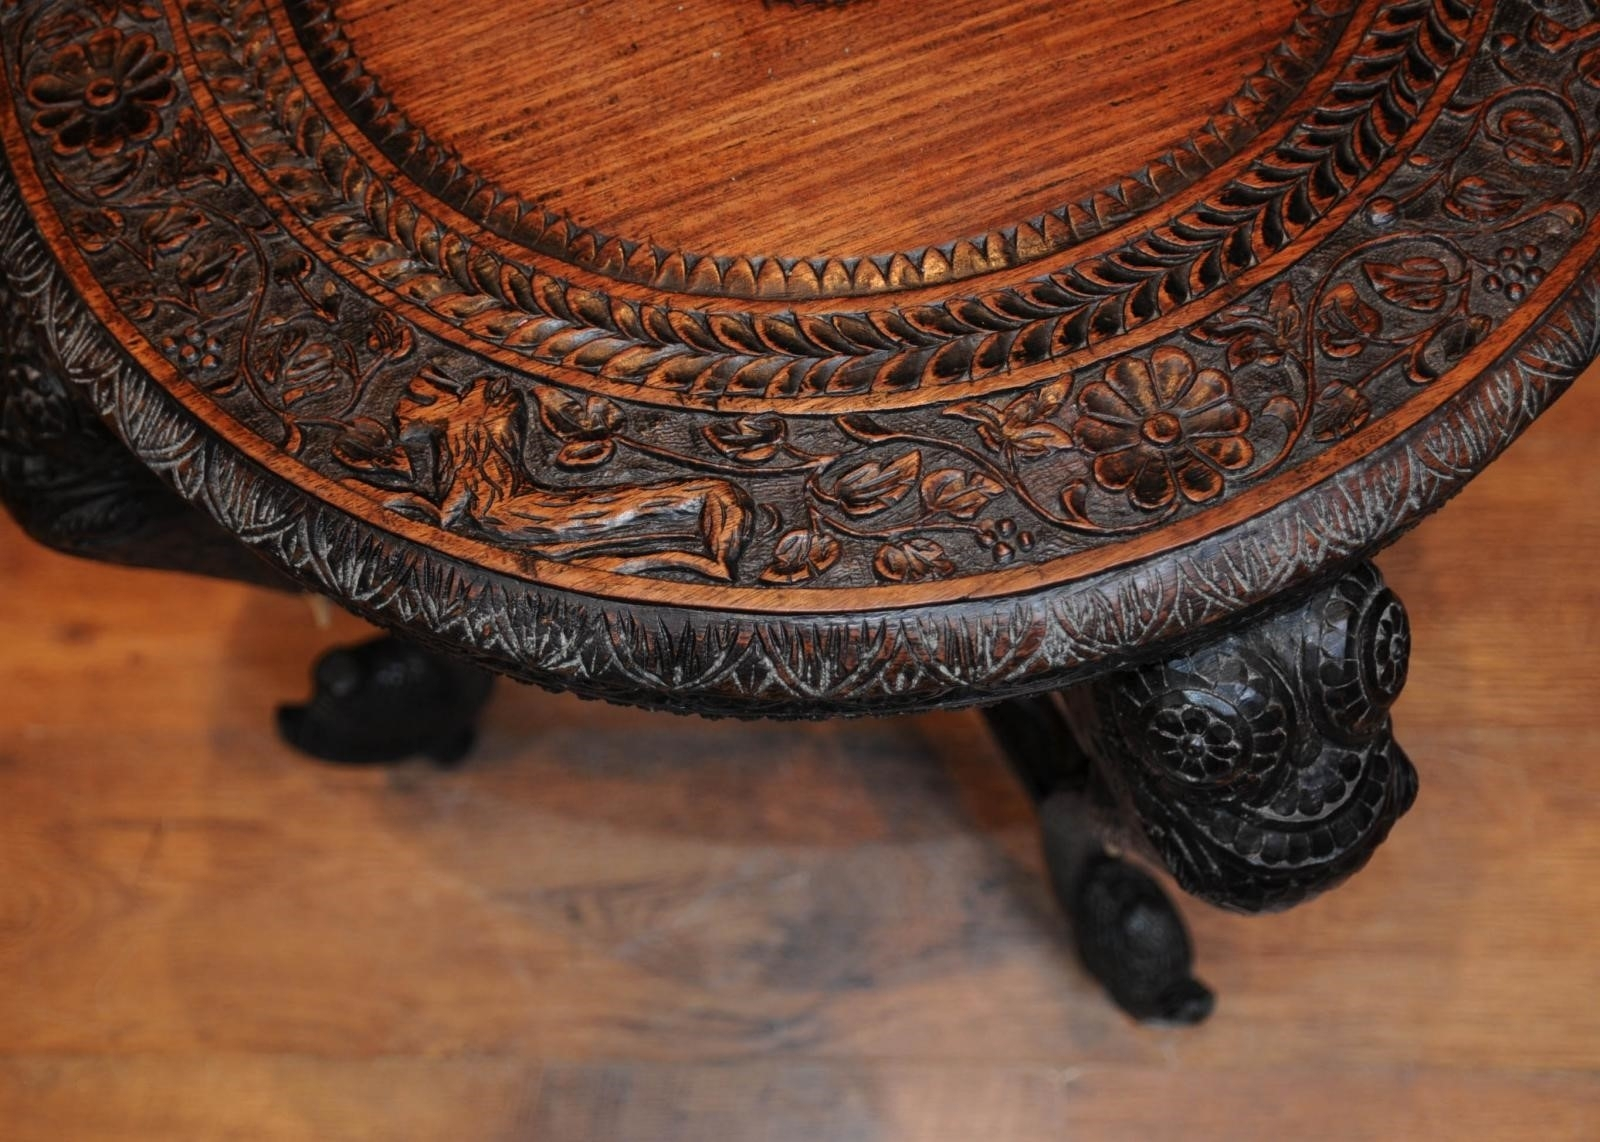 Carved Round Coffee Table | Revolutionhr with regard to Round Carved Wood Coffee Tables (Image 4 of 30)